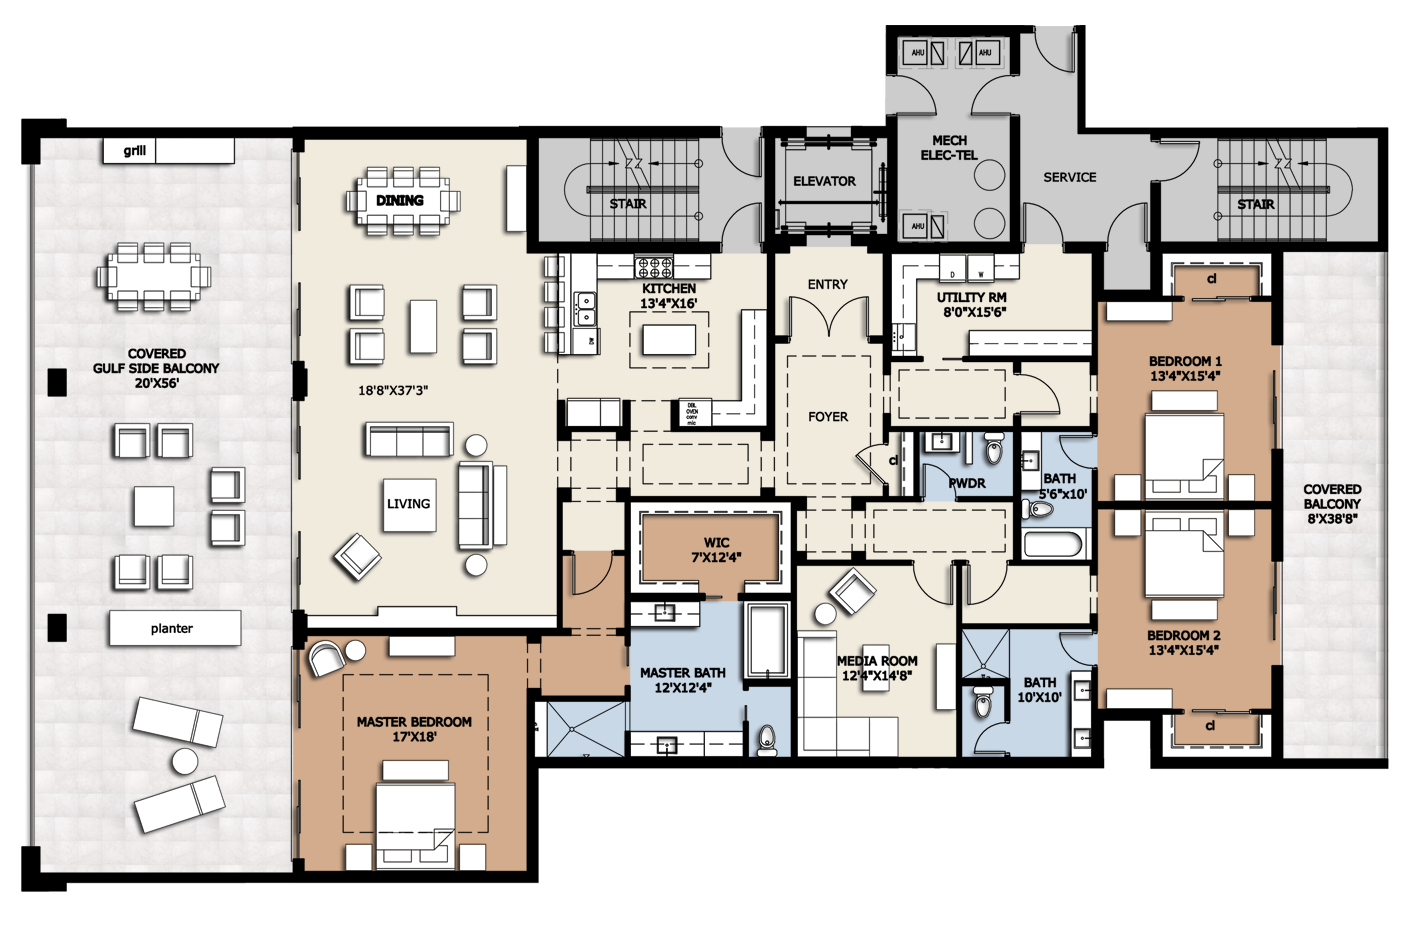 Floor plan residence b infinity longboat key condos for for Condo floor plan